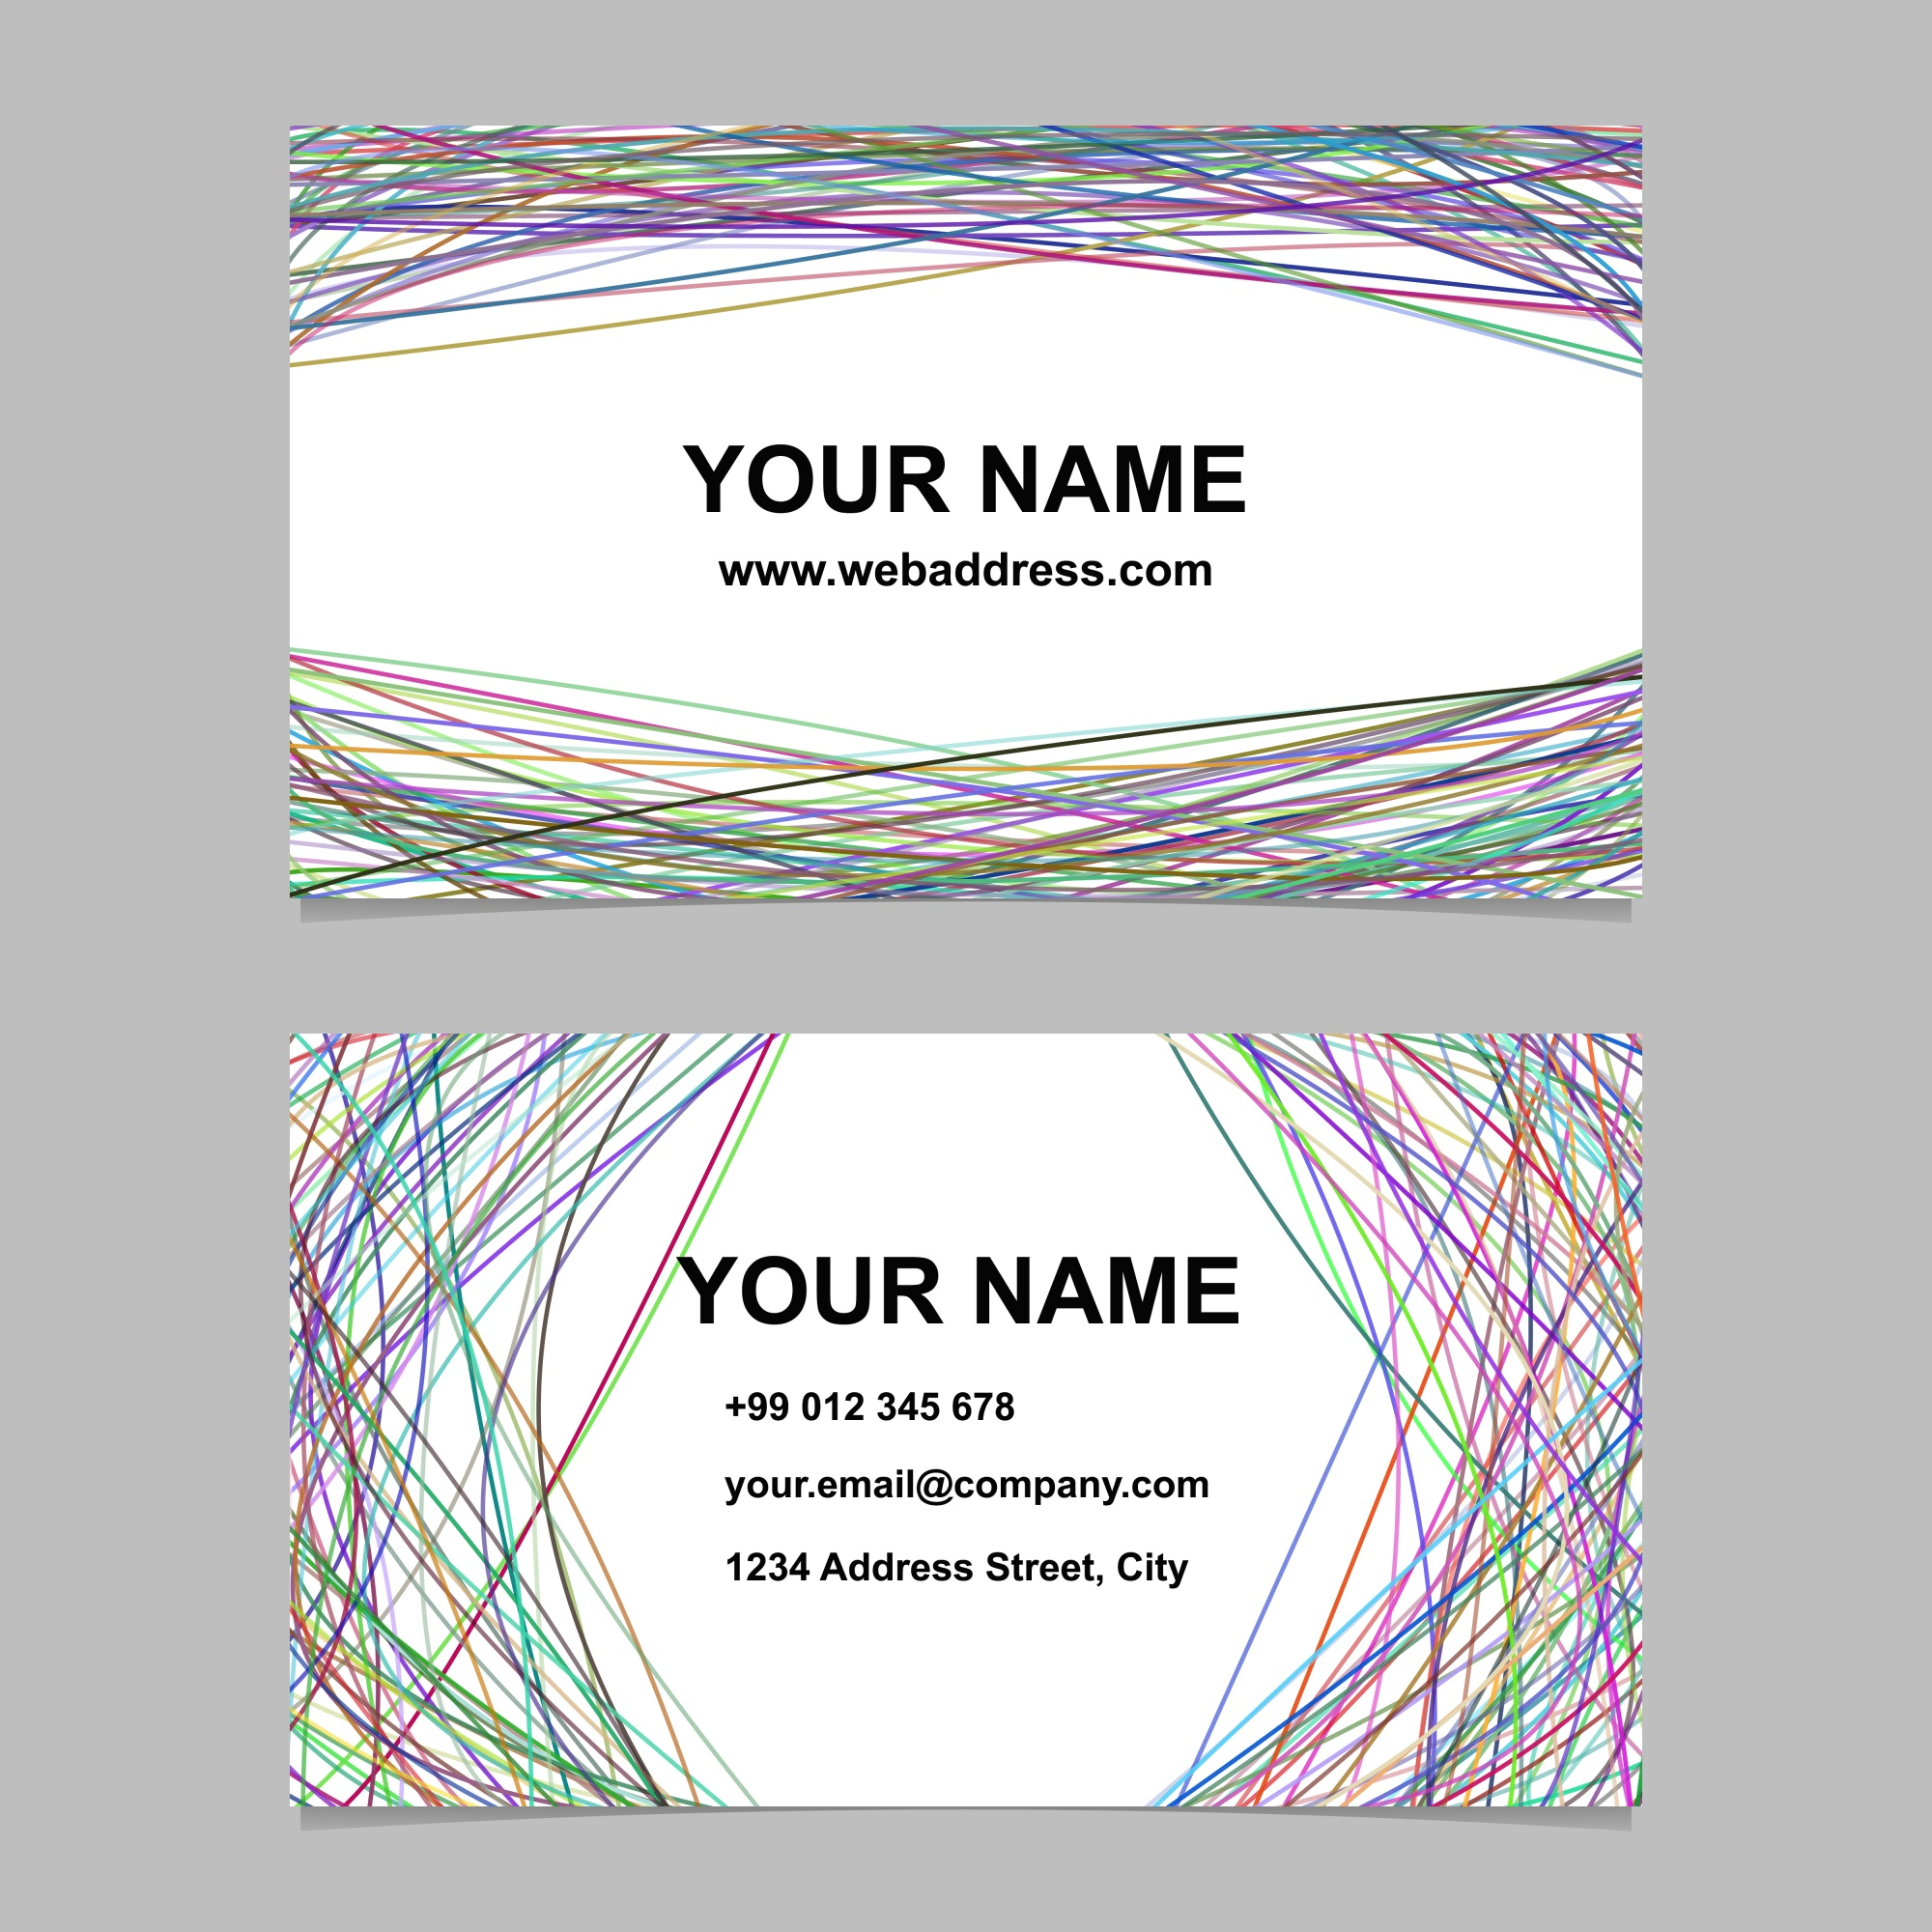 Modern business card template set - vector corporate design with arched stripes